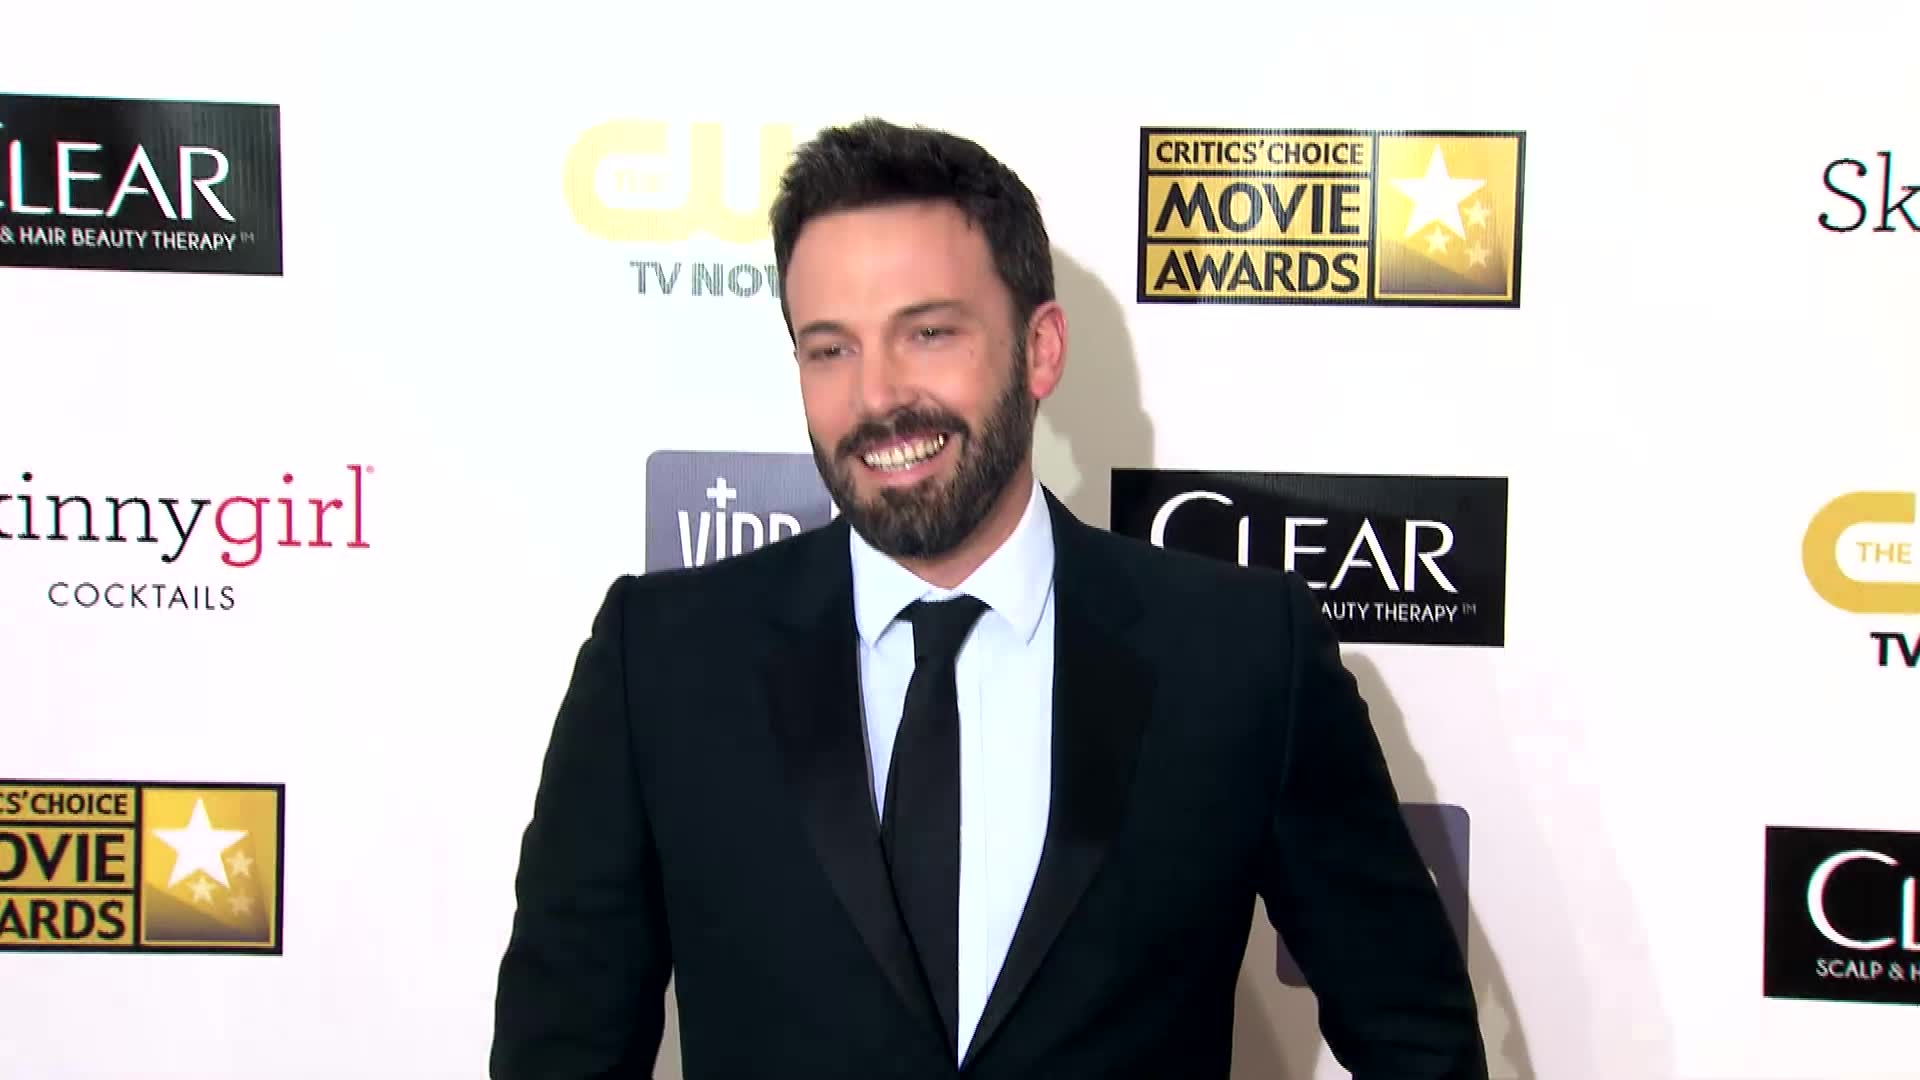 Ben Affleck and Jennifer Garner's Marriage is Not in Trouble